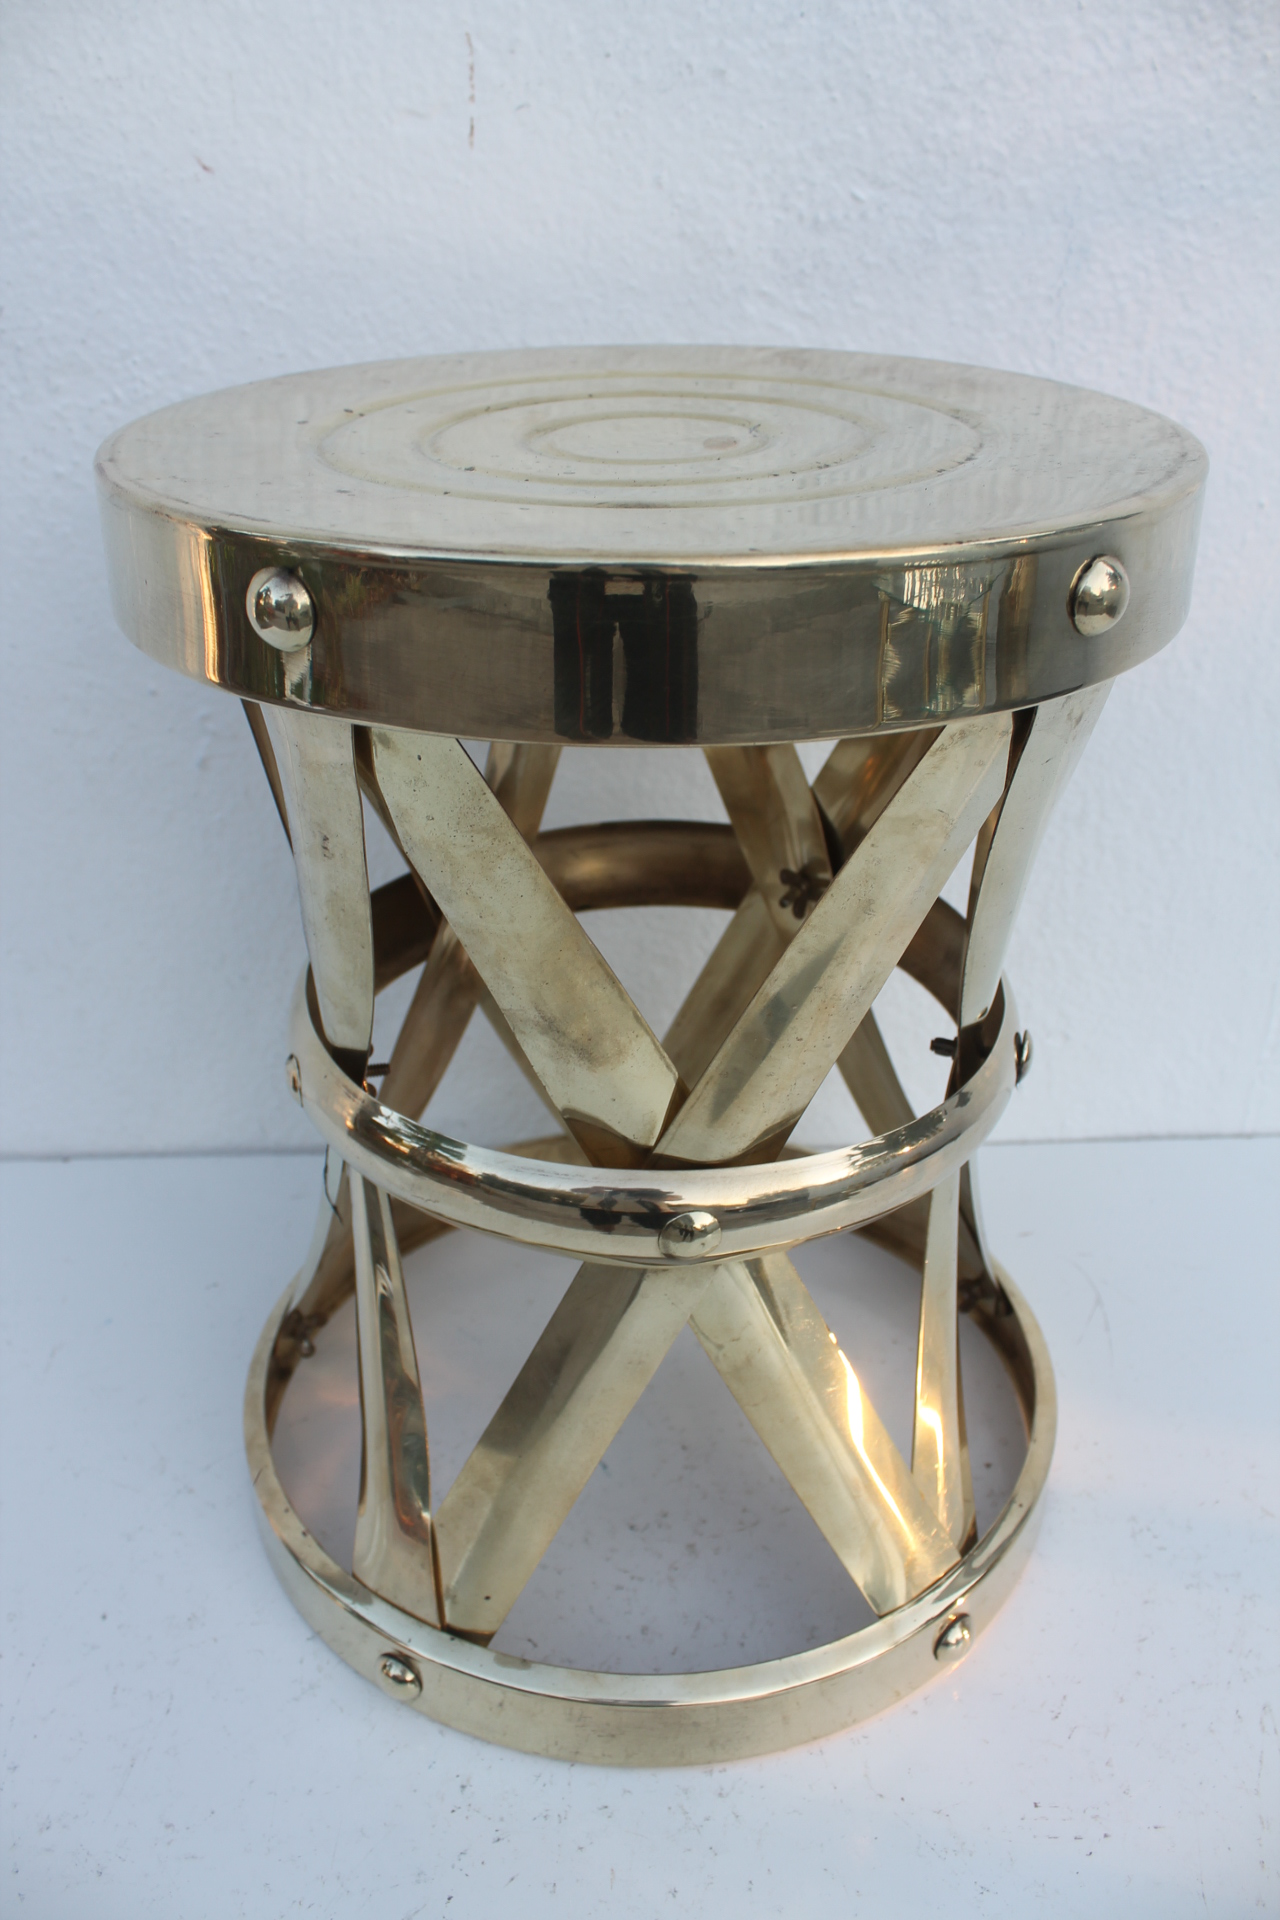 Vintage Mid Century Modern Sculptural X  Drum Side Table Or Stool, Made Of